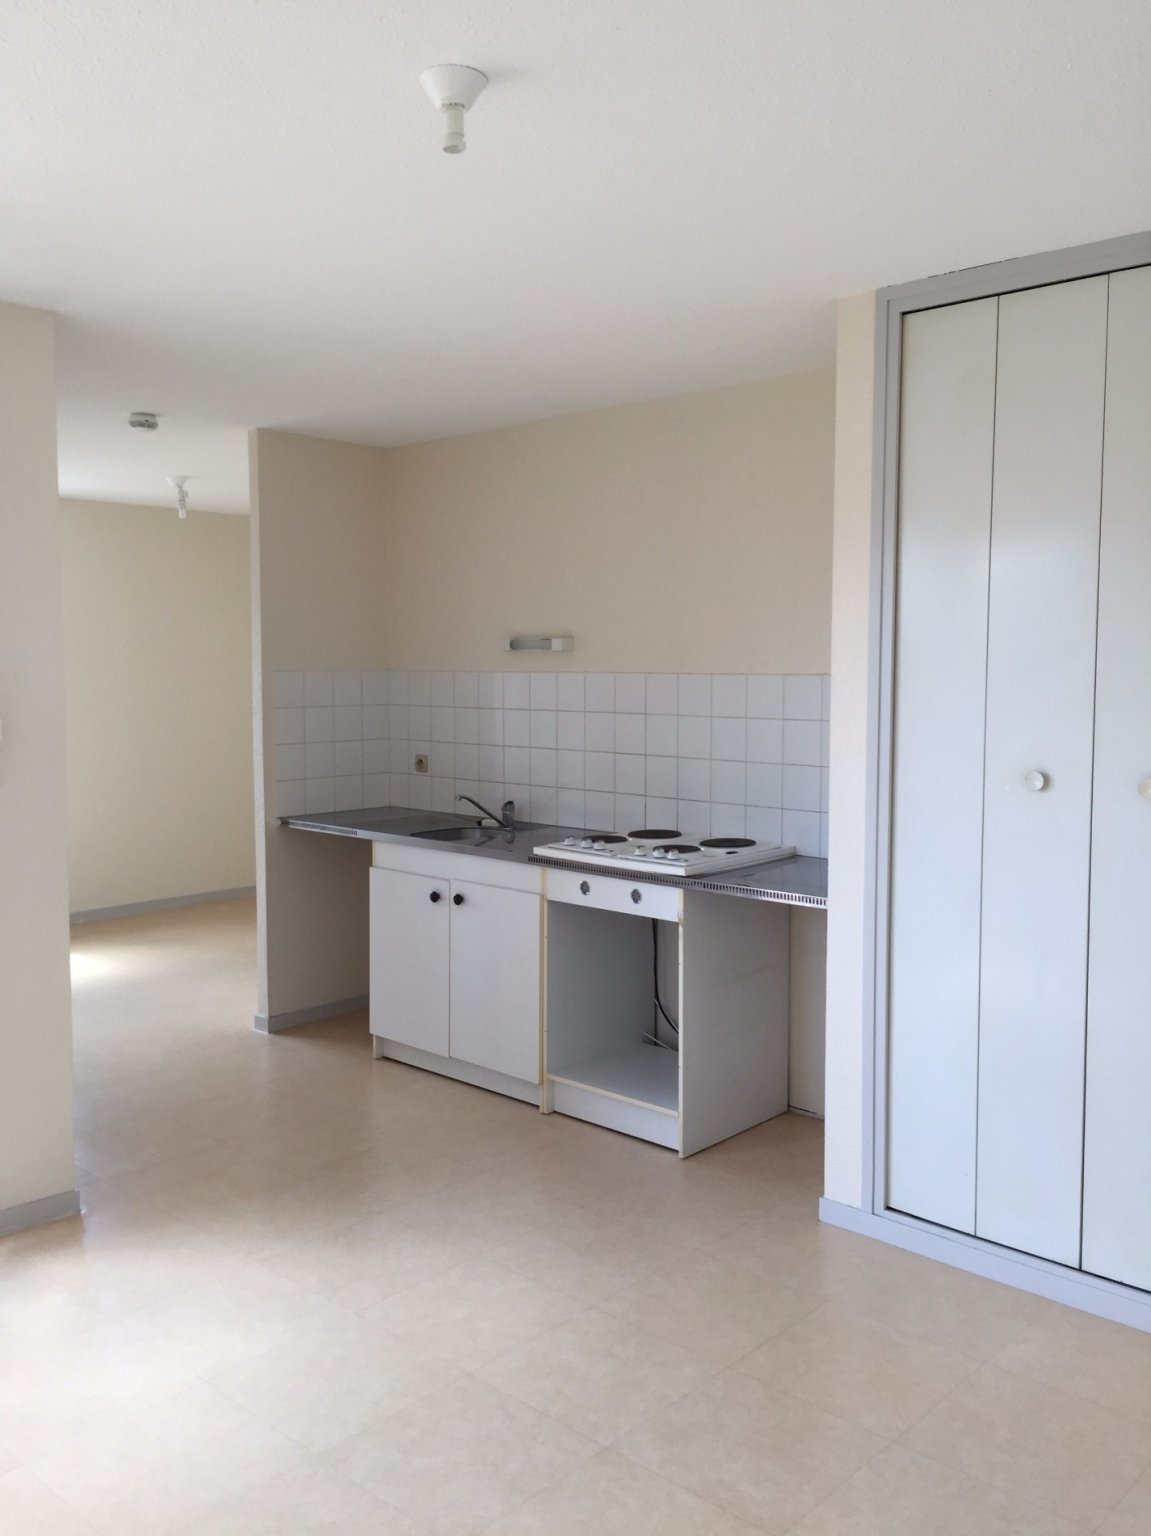 Apartment CARCASSONNE | 300 € / month